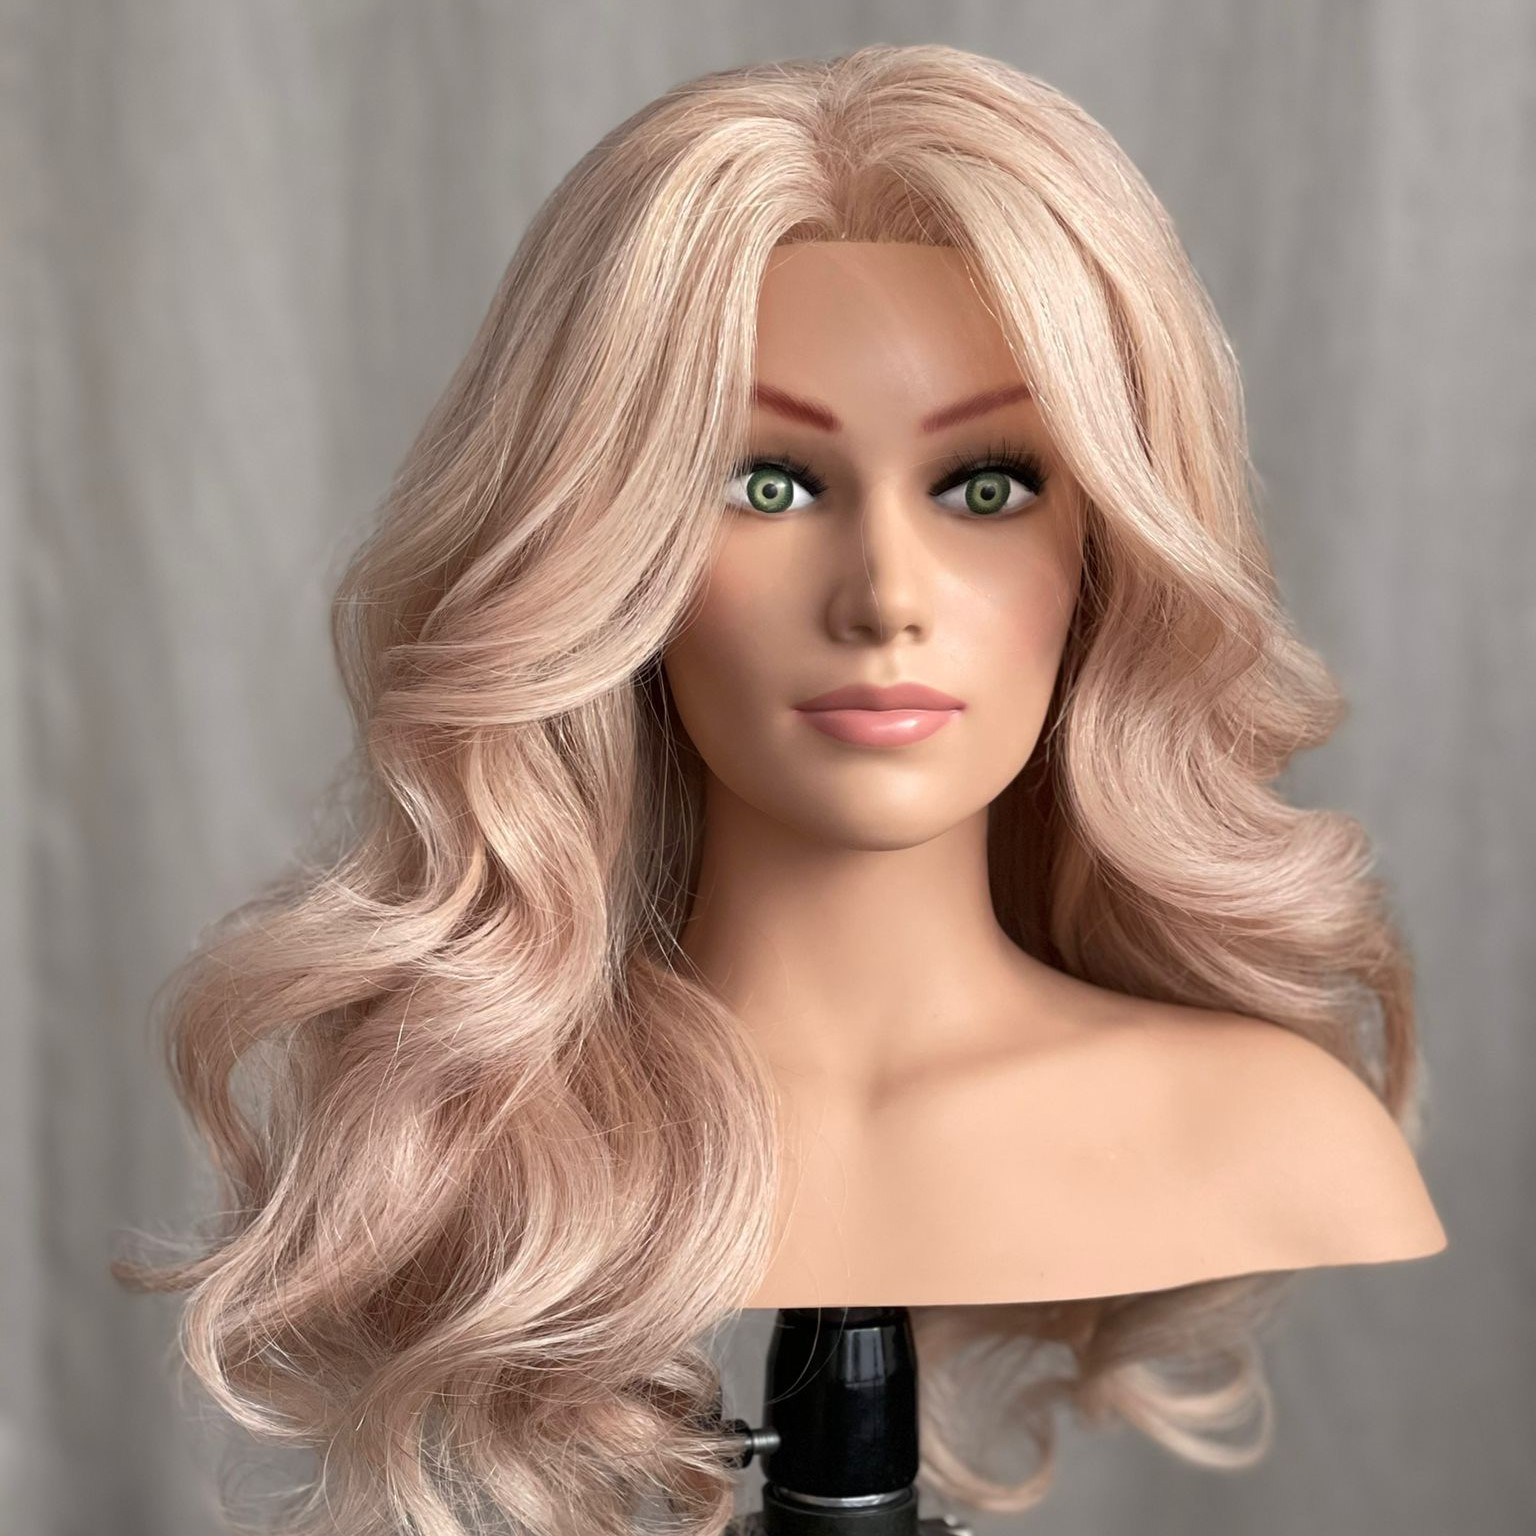 hairstyling mannequin dolly